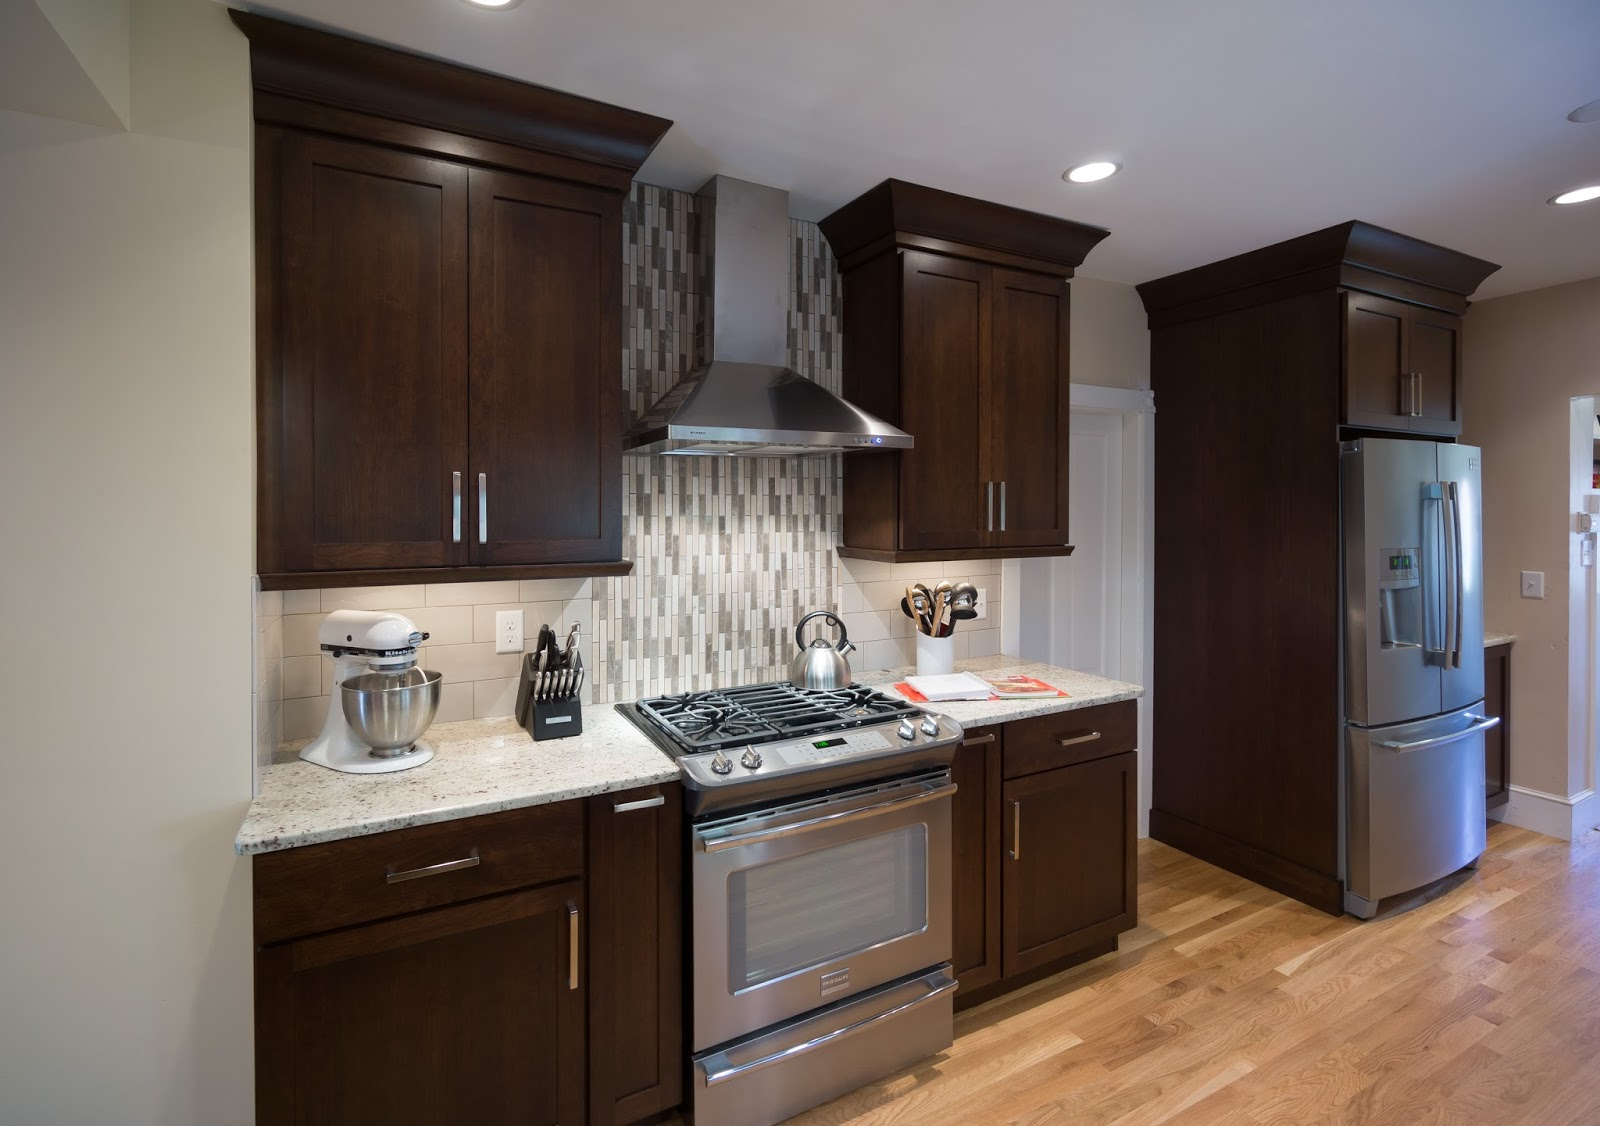 Faber Rangehoods: Classica hood in a Transitional New ...